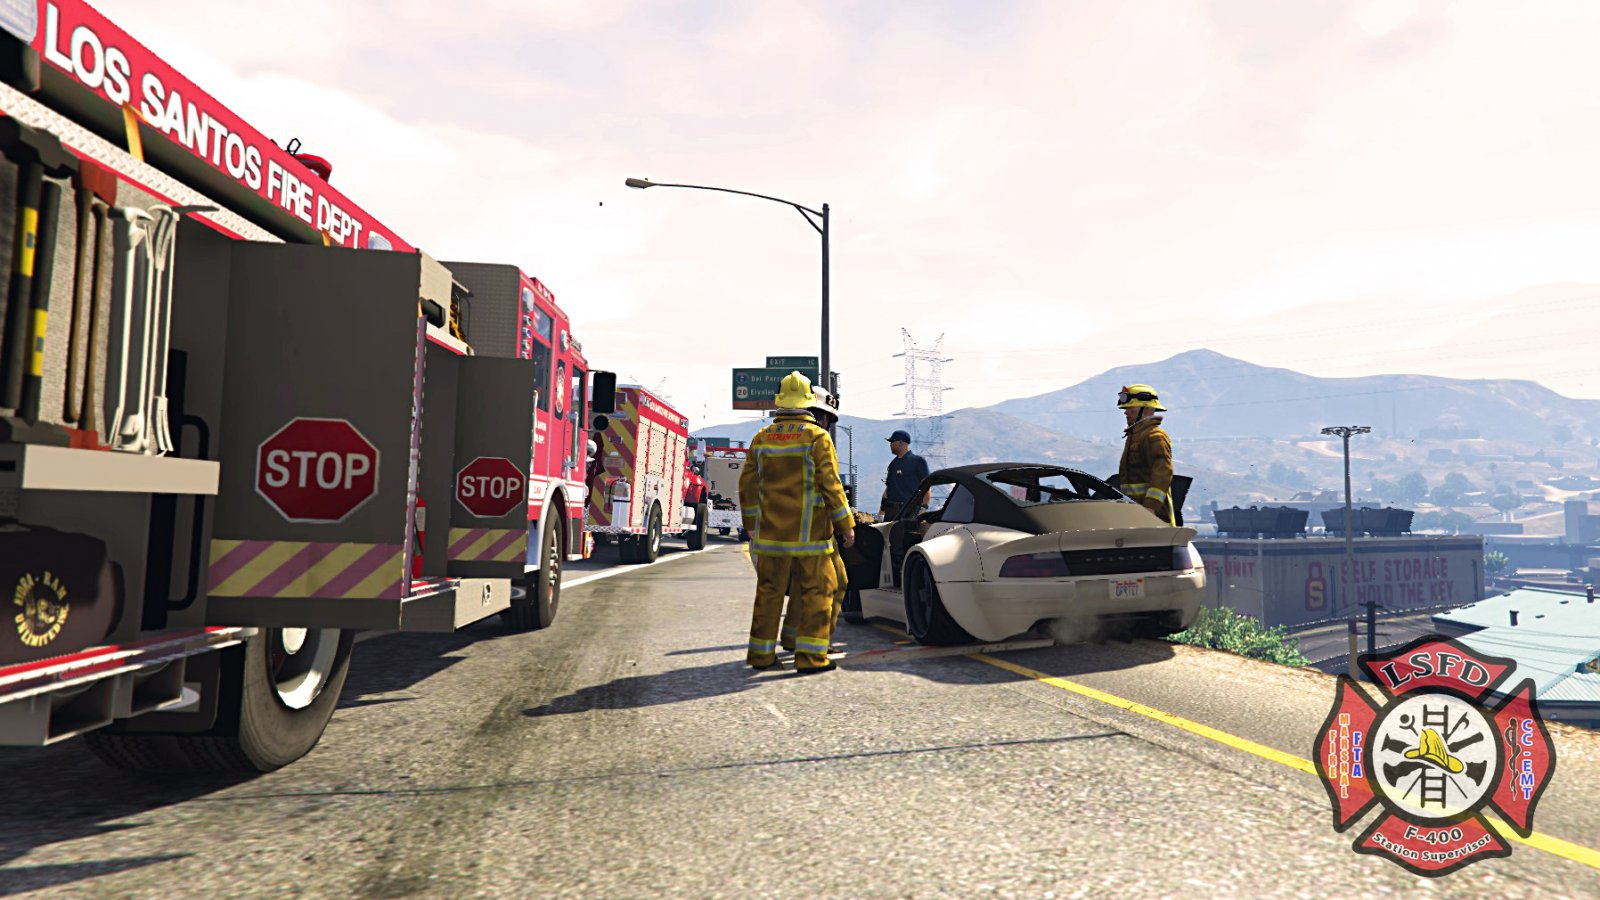 Amazing MVA scene on I-4 couple of days ago. Was able to have a full response from the LSFD, Rescue, Ladder, Engine company, Medic all on scene ! #DoJRP